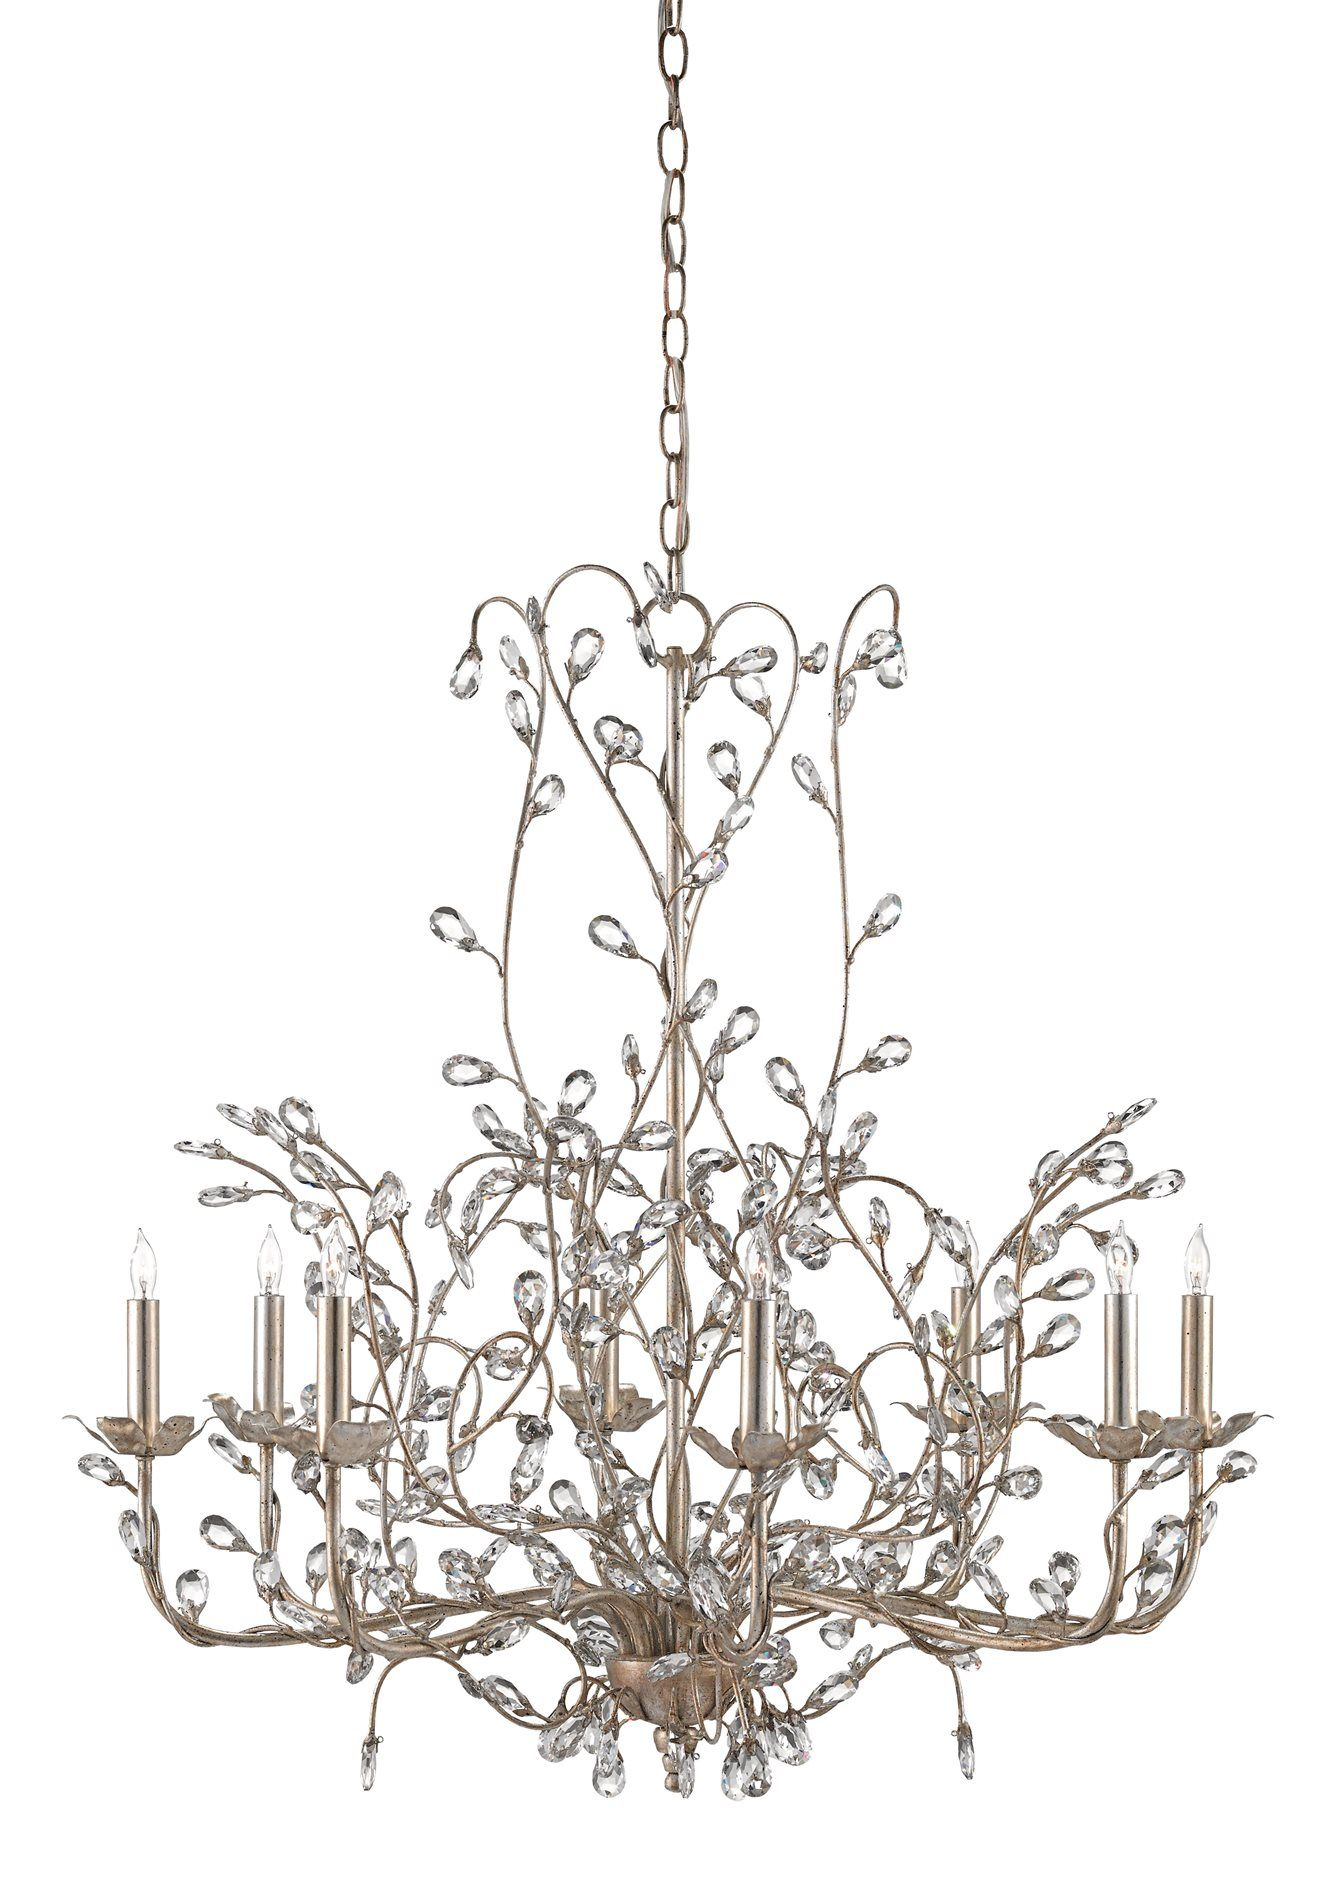 South shore decorating currey and company 9975 crystal bud south shore decorating currey and company 9975 crystal bud transitional chandelier large cnc arubaitofo Images